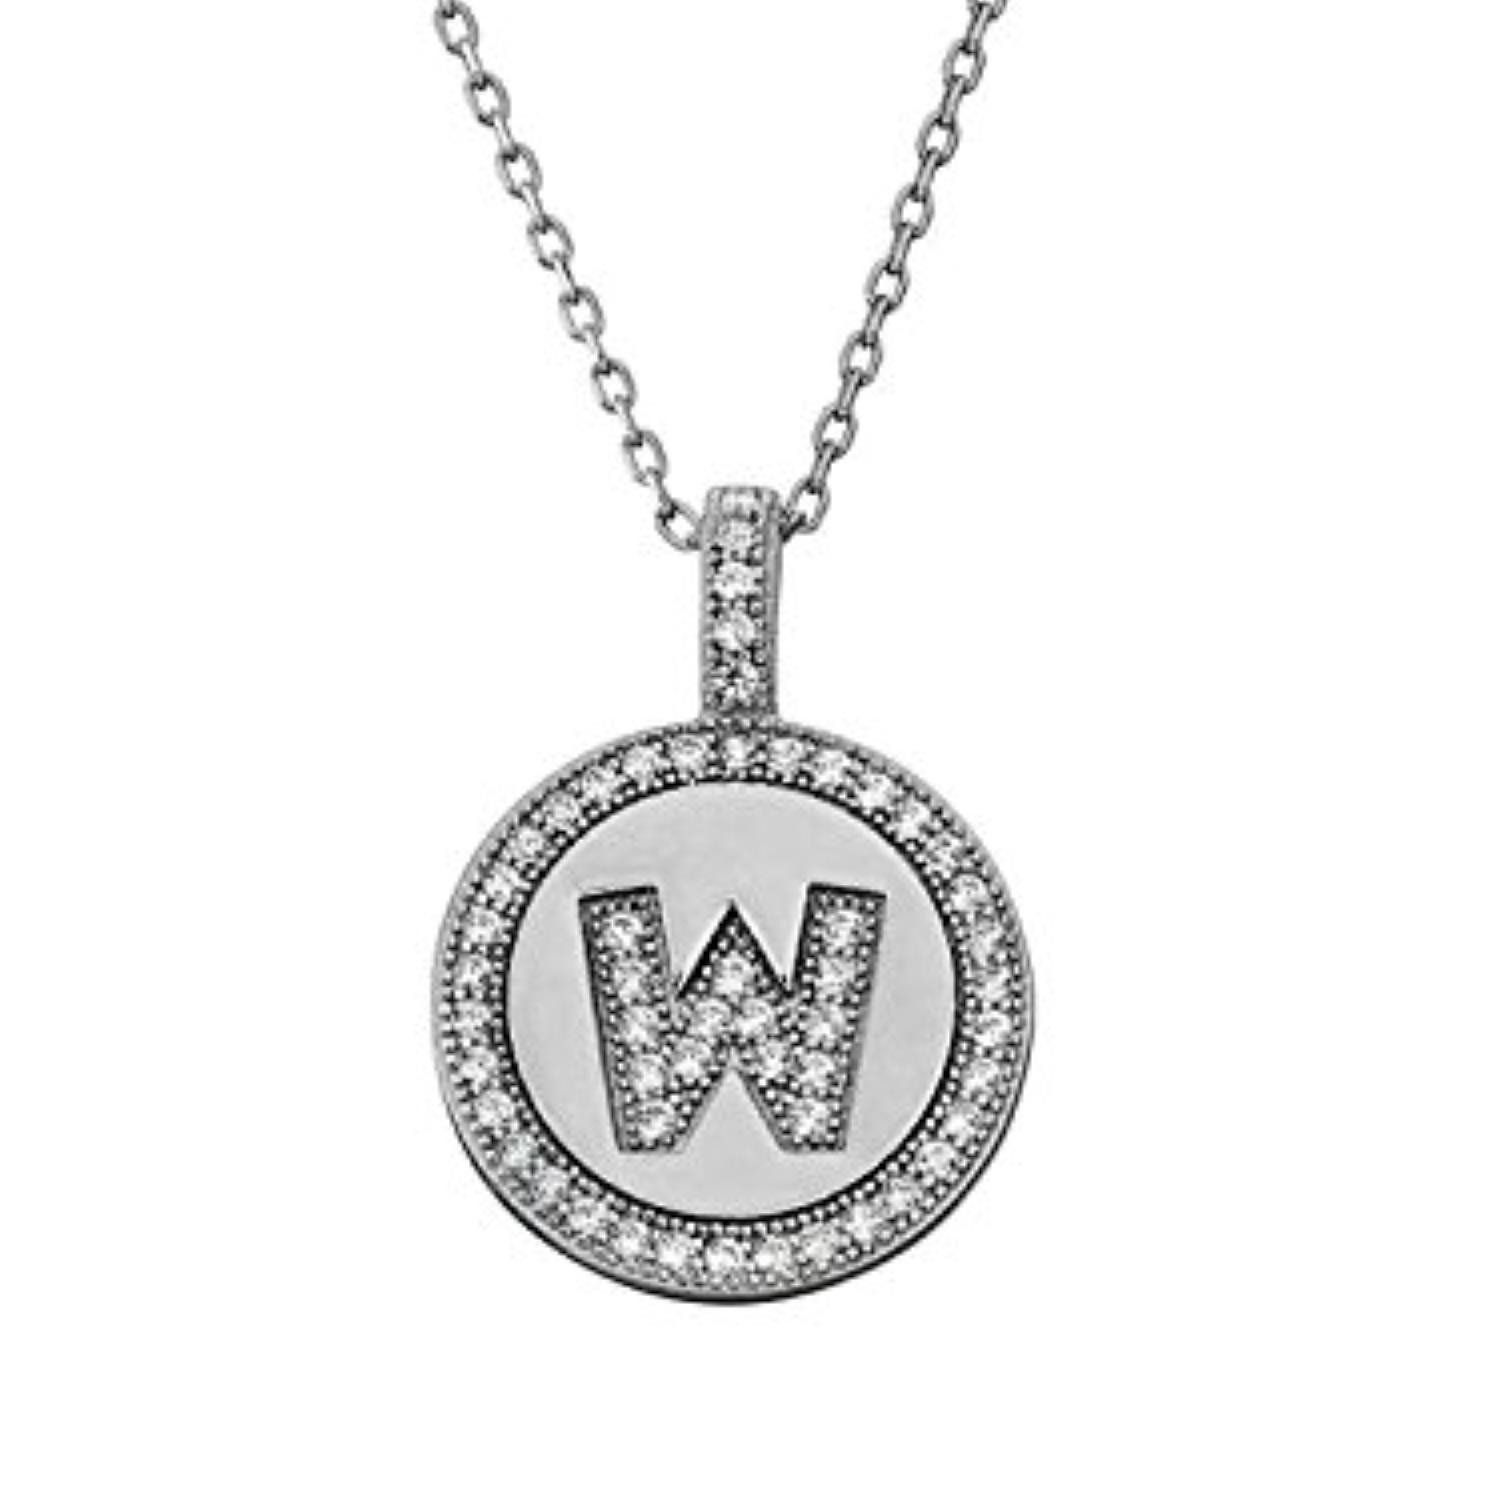 Letter w micro pave initial cz pendant sterling silver